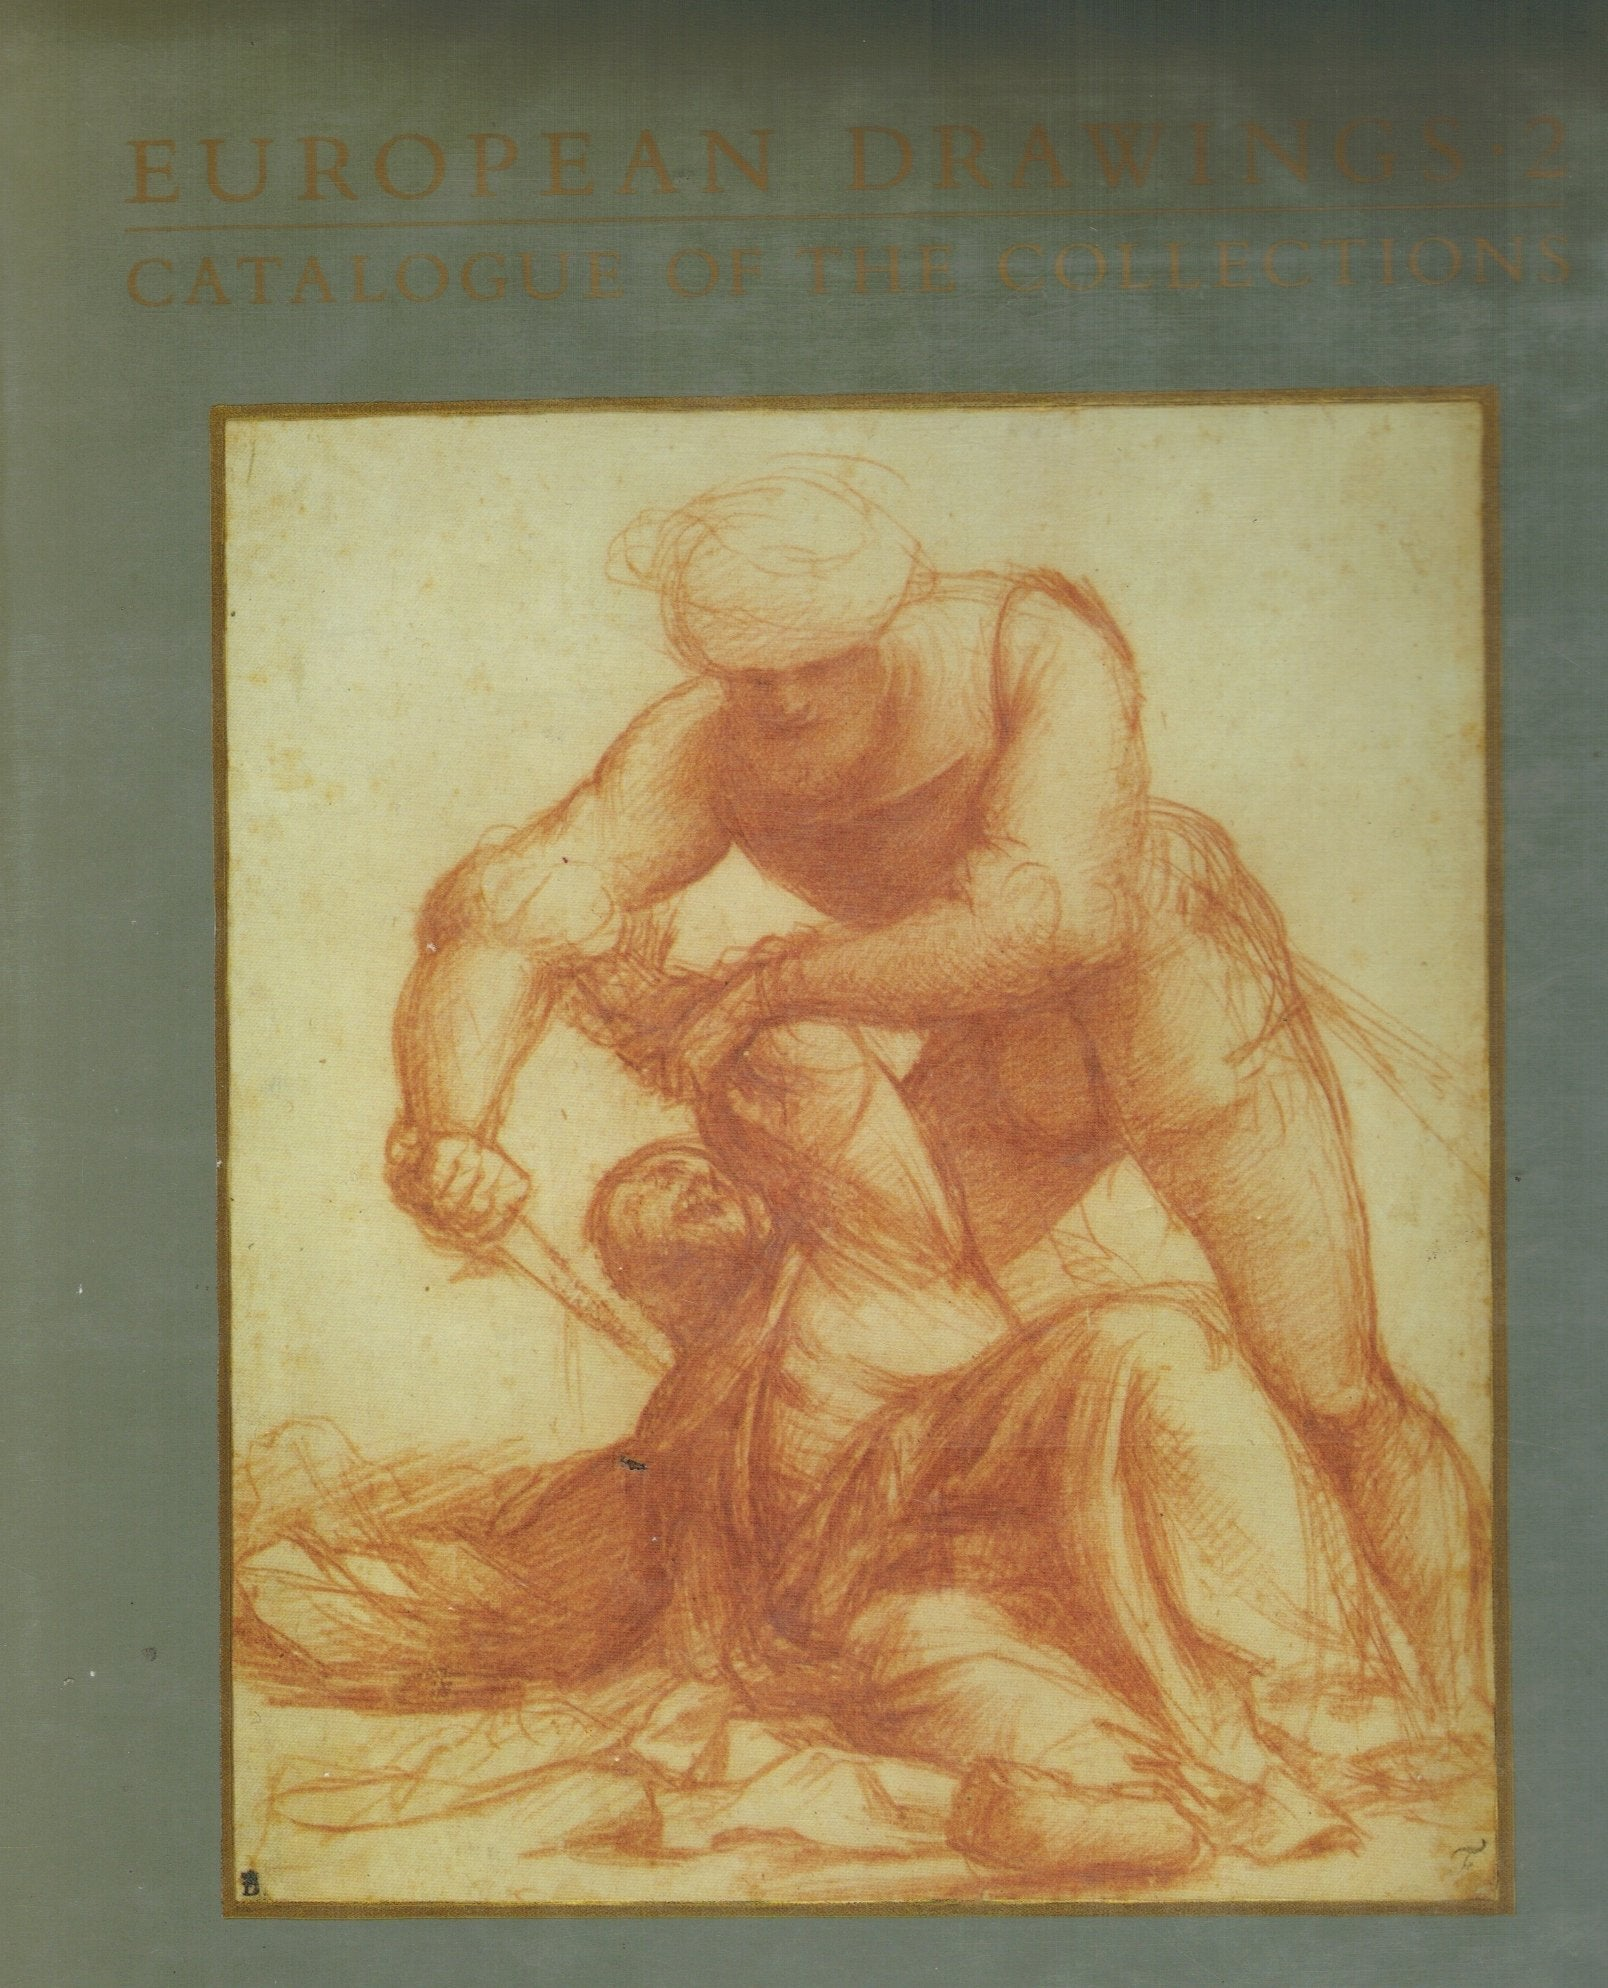 European Drawings 2  Catalogue of the Collections (J Paul Getty  Museum//European Drawings) (No. 2) - books-new